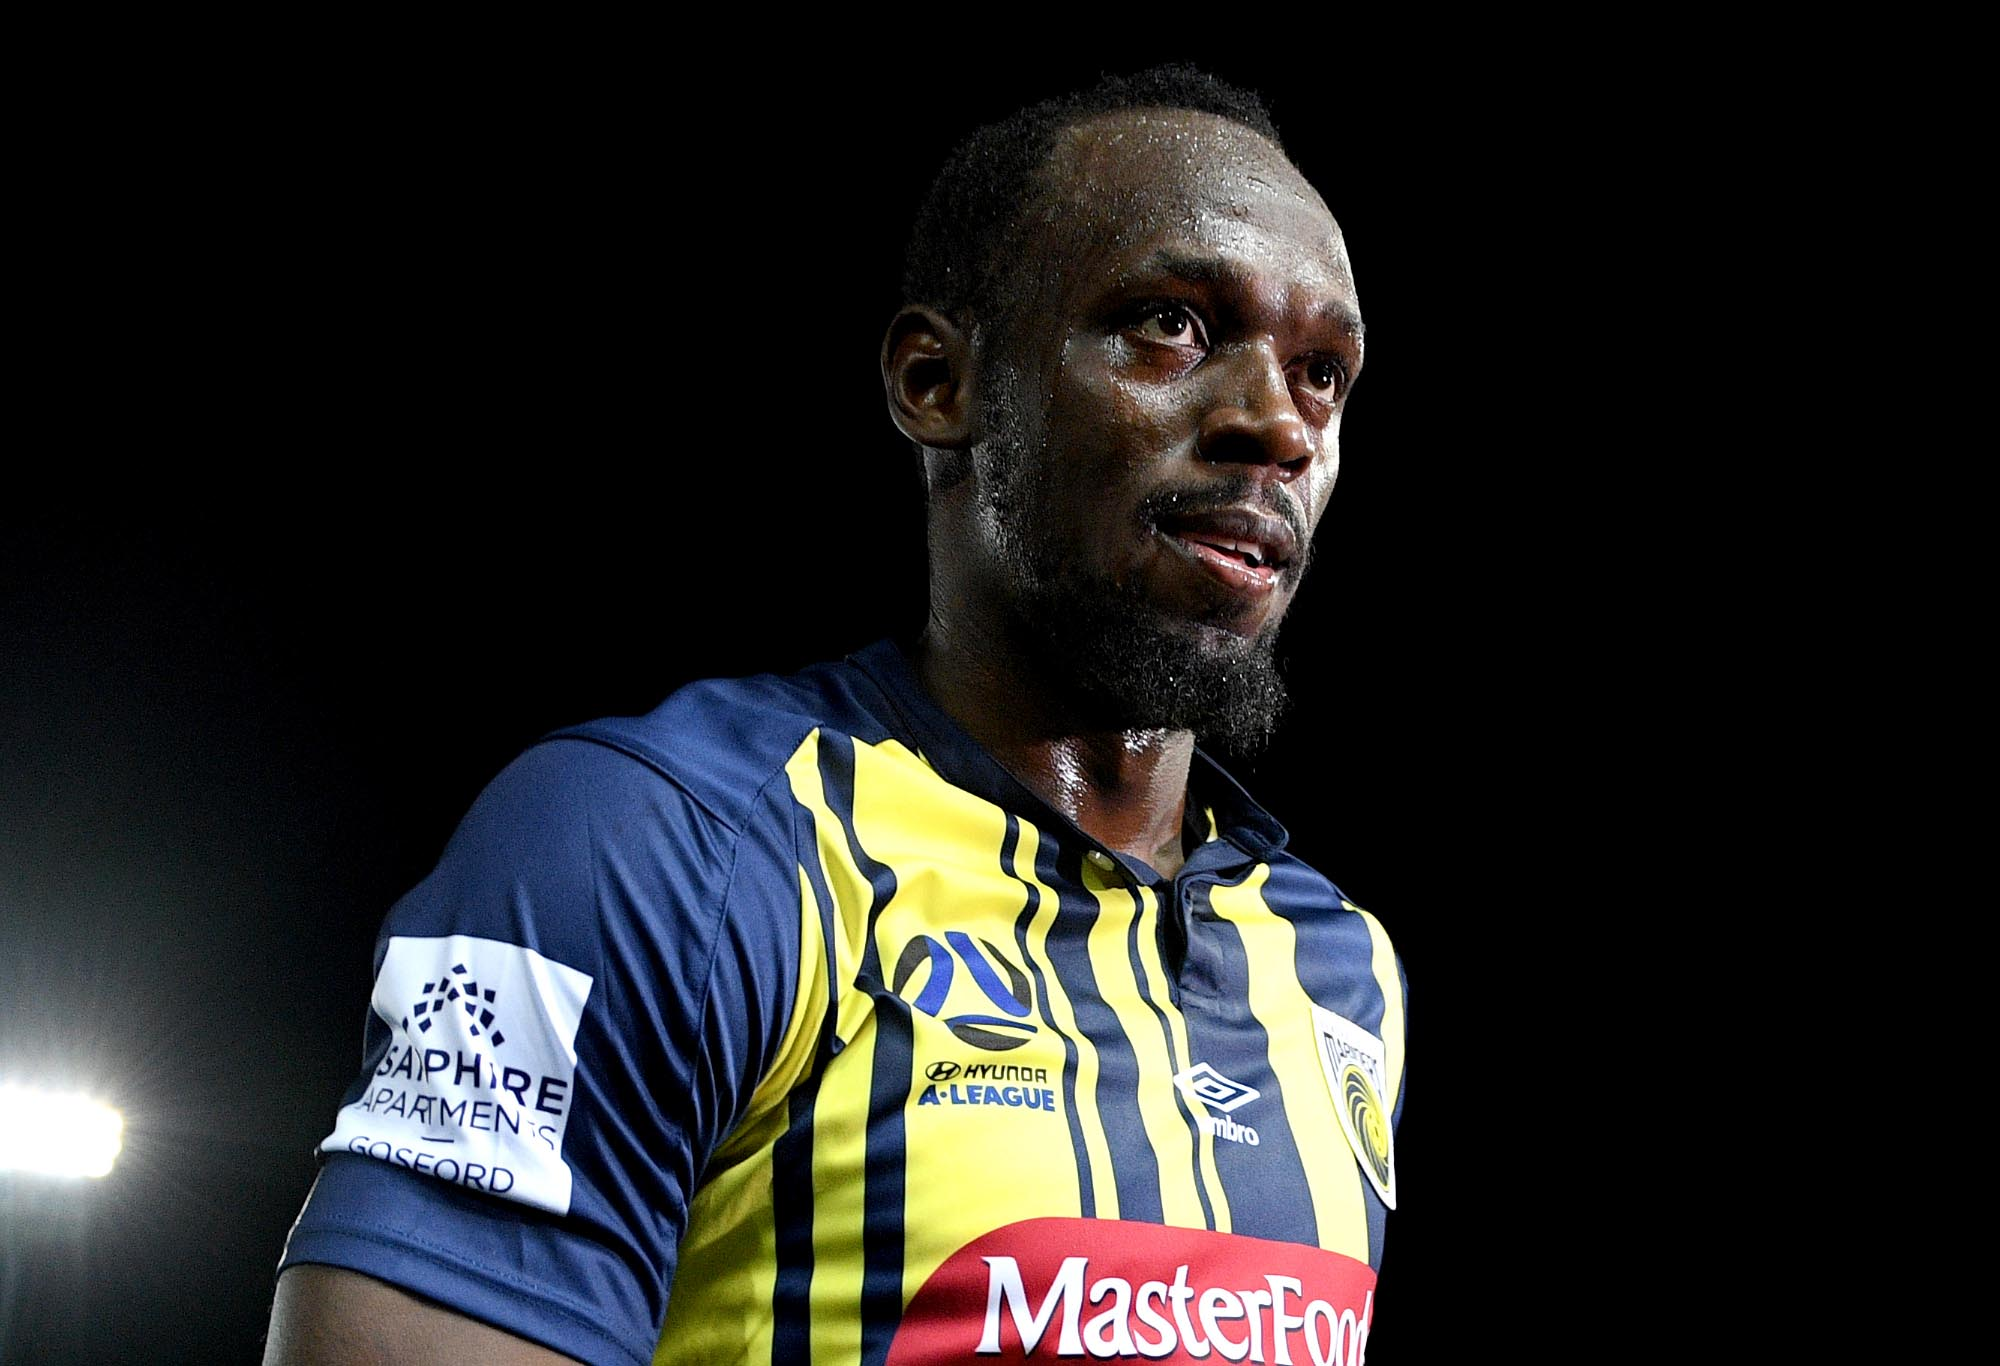 Usain Bolt of the Mariners leaves the field following his Central Coast Mariners debut.